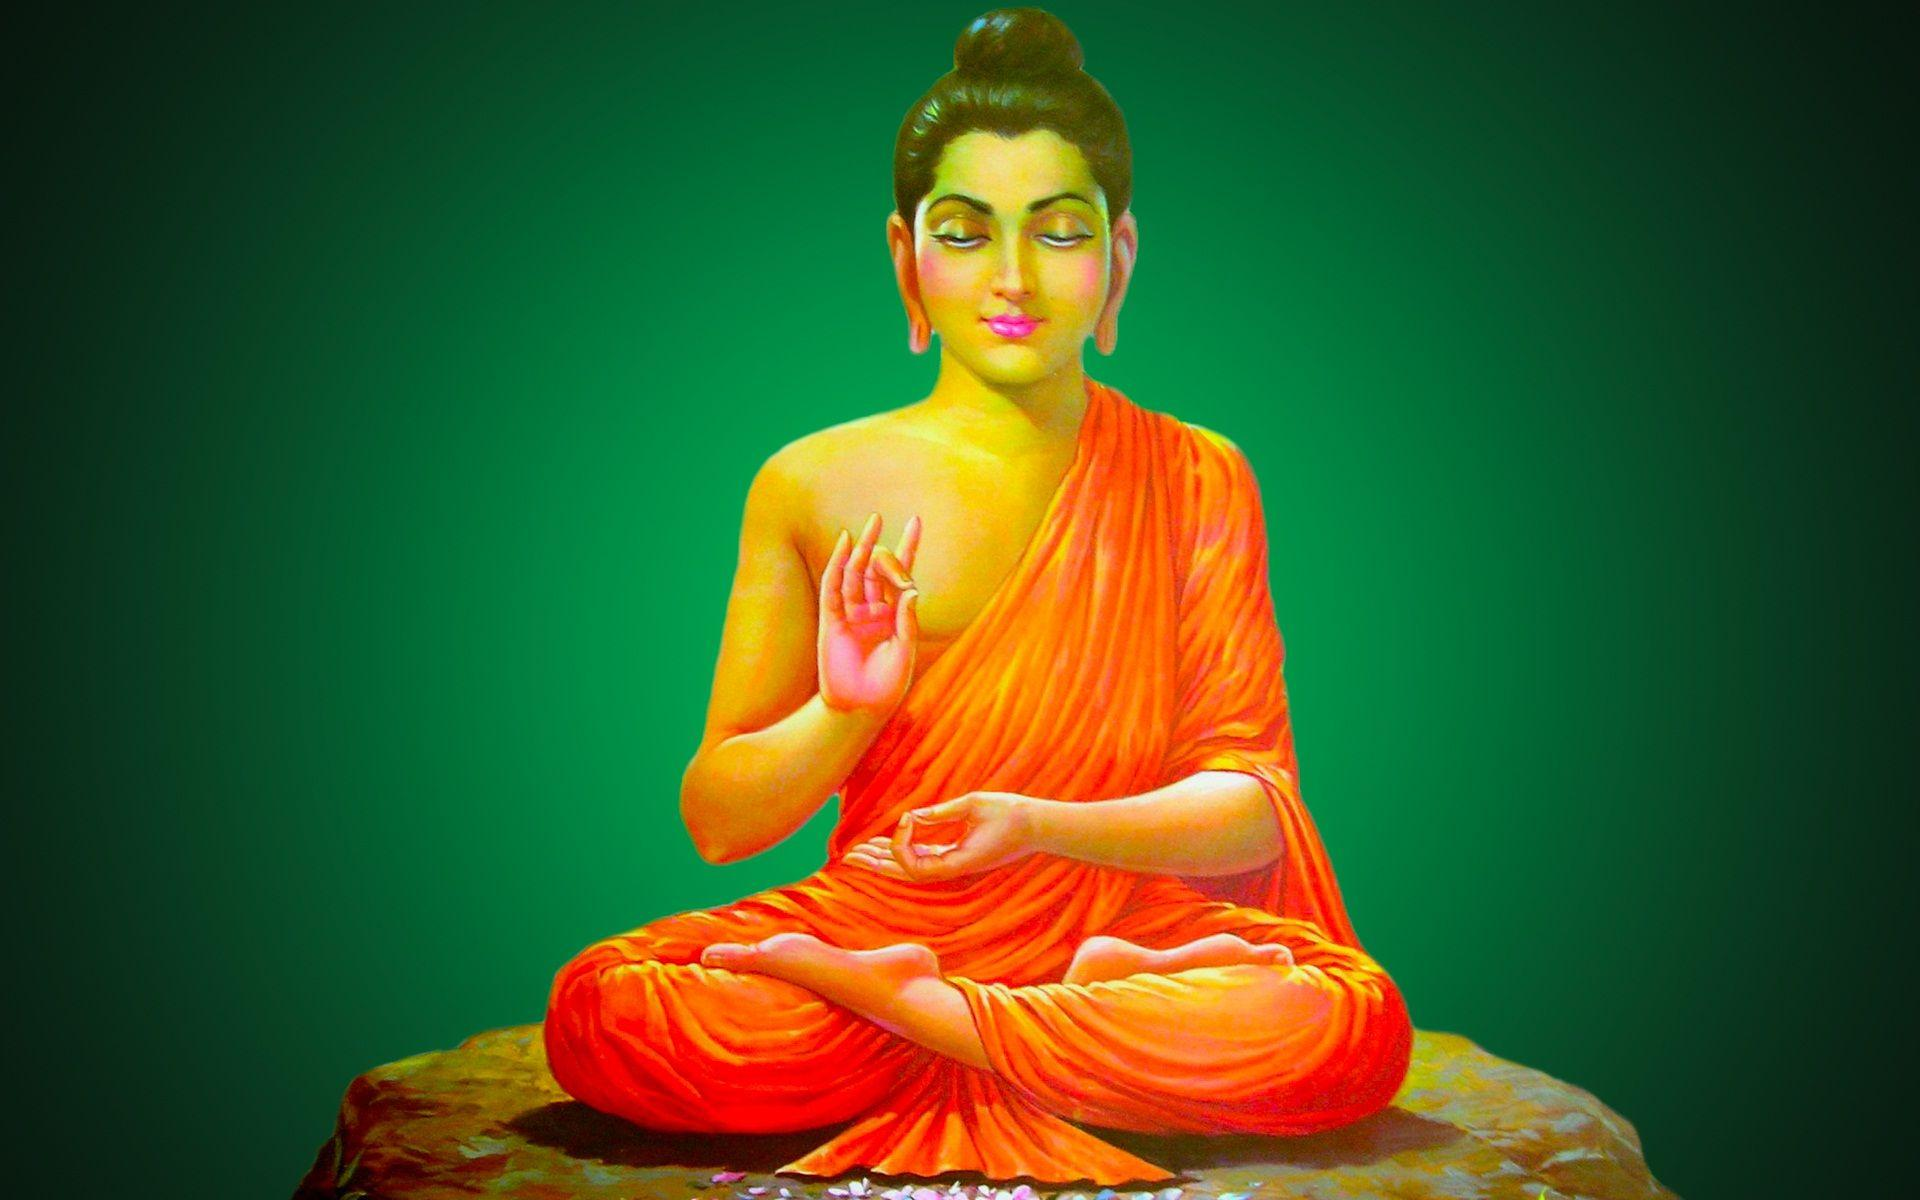 an analysis of man by buddha Kill the buddha, says the old koan kill buddhism, says sam harris, author of the end of faith, who argues that buddhism's philosophy one could surely argue that the buddhist tradition, taken as a whole, represents the richest source of contemplative wisdom that any civilization has produced.